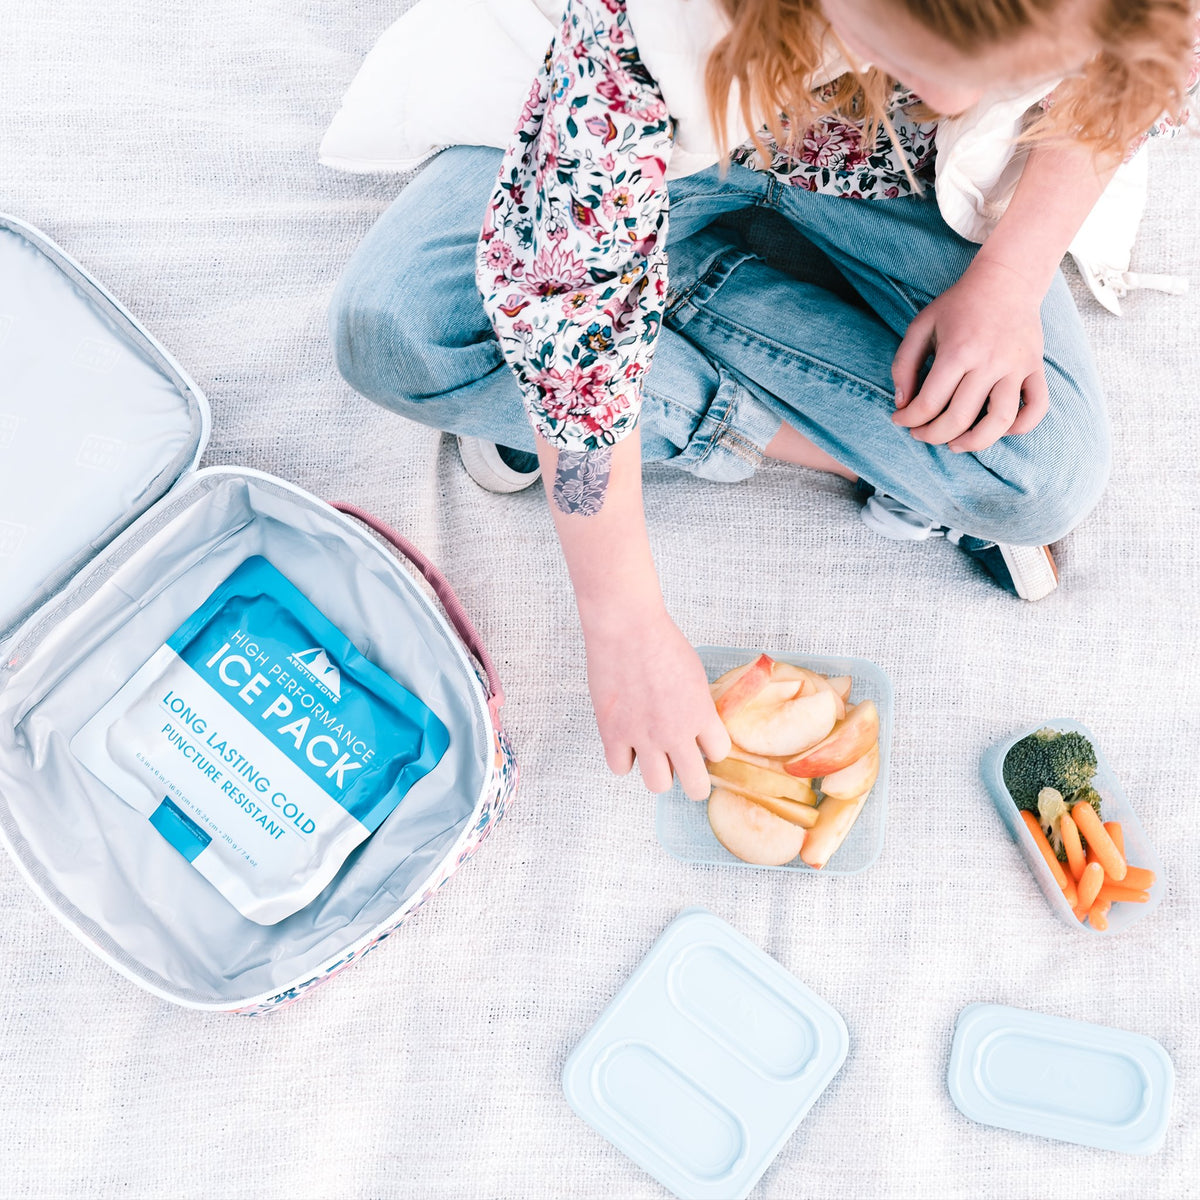 Arctic Zone® Classics Lunch Box - Floral - Lifestyle, Little girl snack time